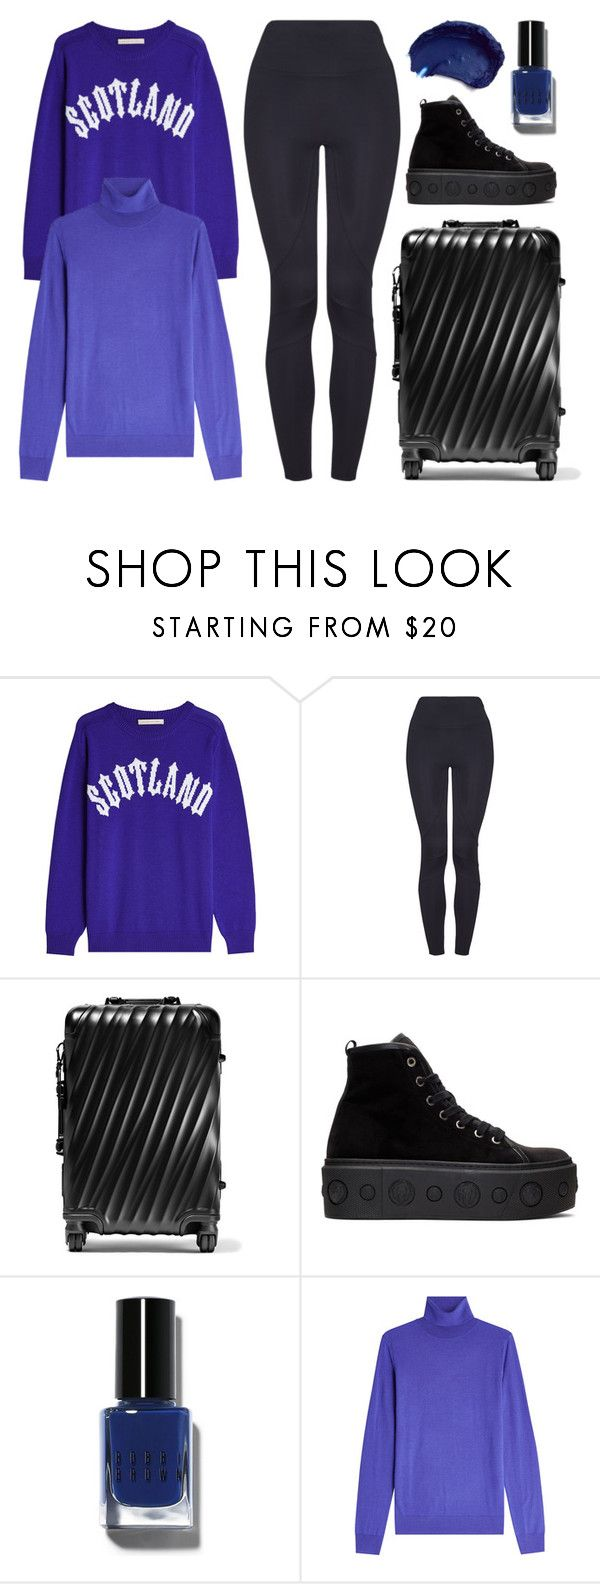 """Travel Attire"" by cherieaustin ❤ liked on Polyvore featuring Christopher Kane, Tumi, Versus, Bobbi Brown Cosmetics and HUGO"